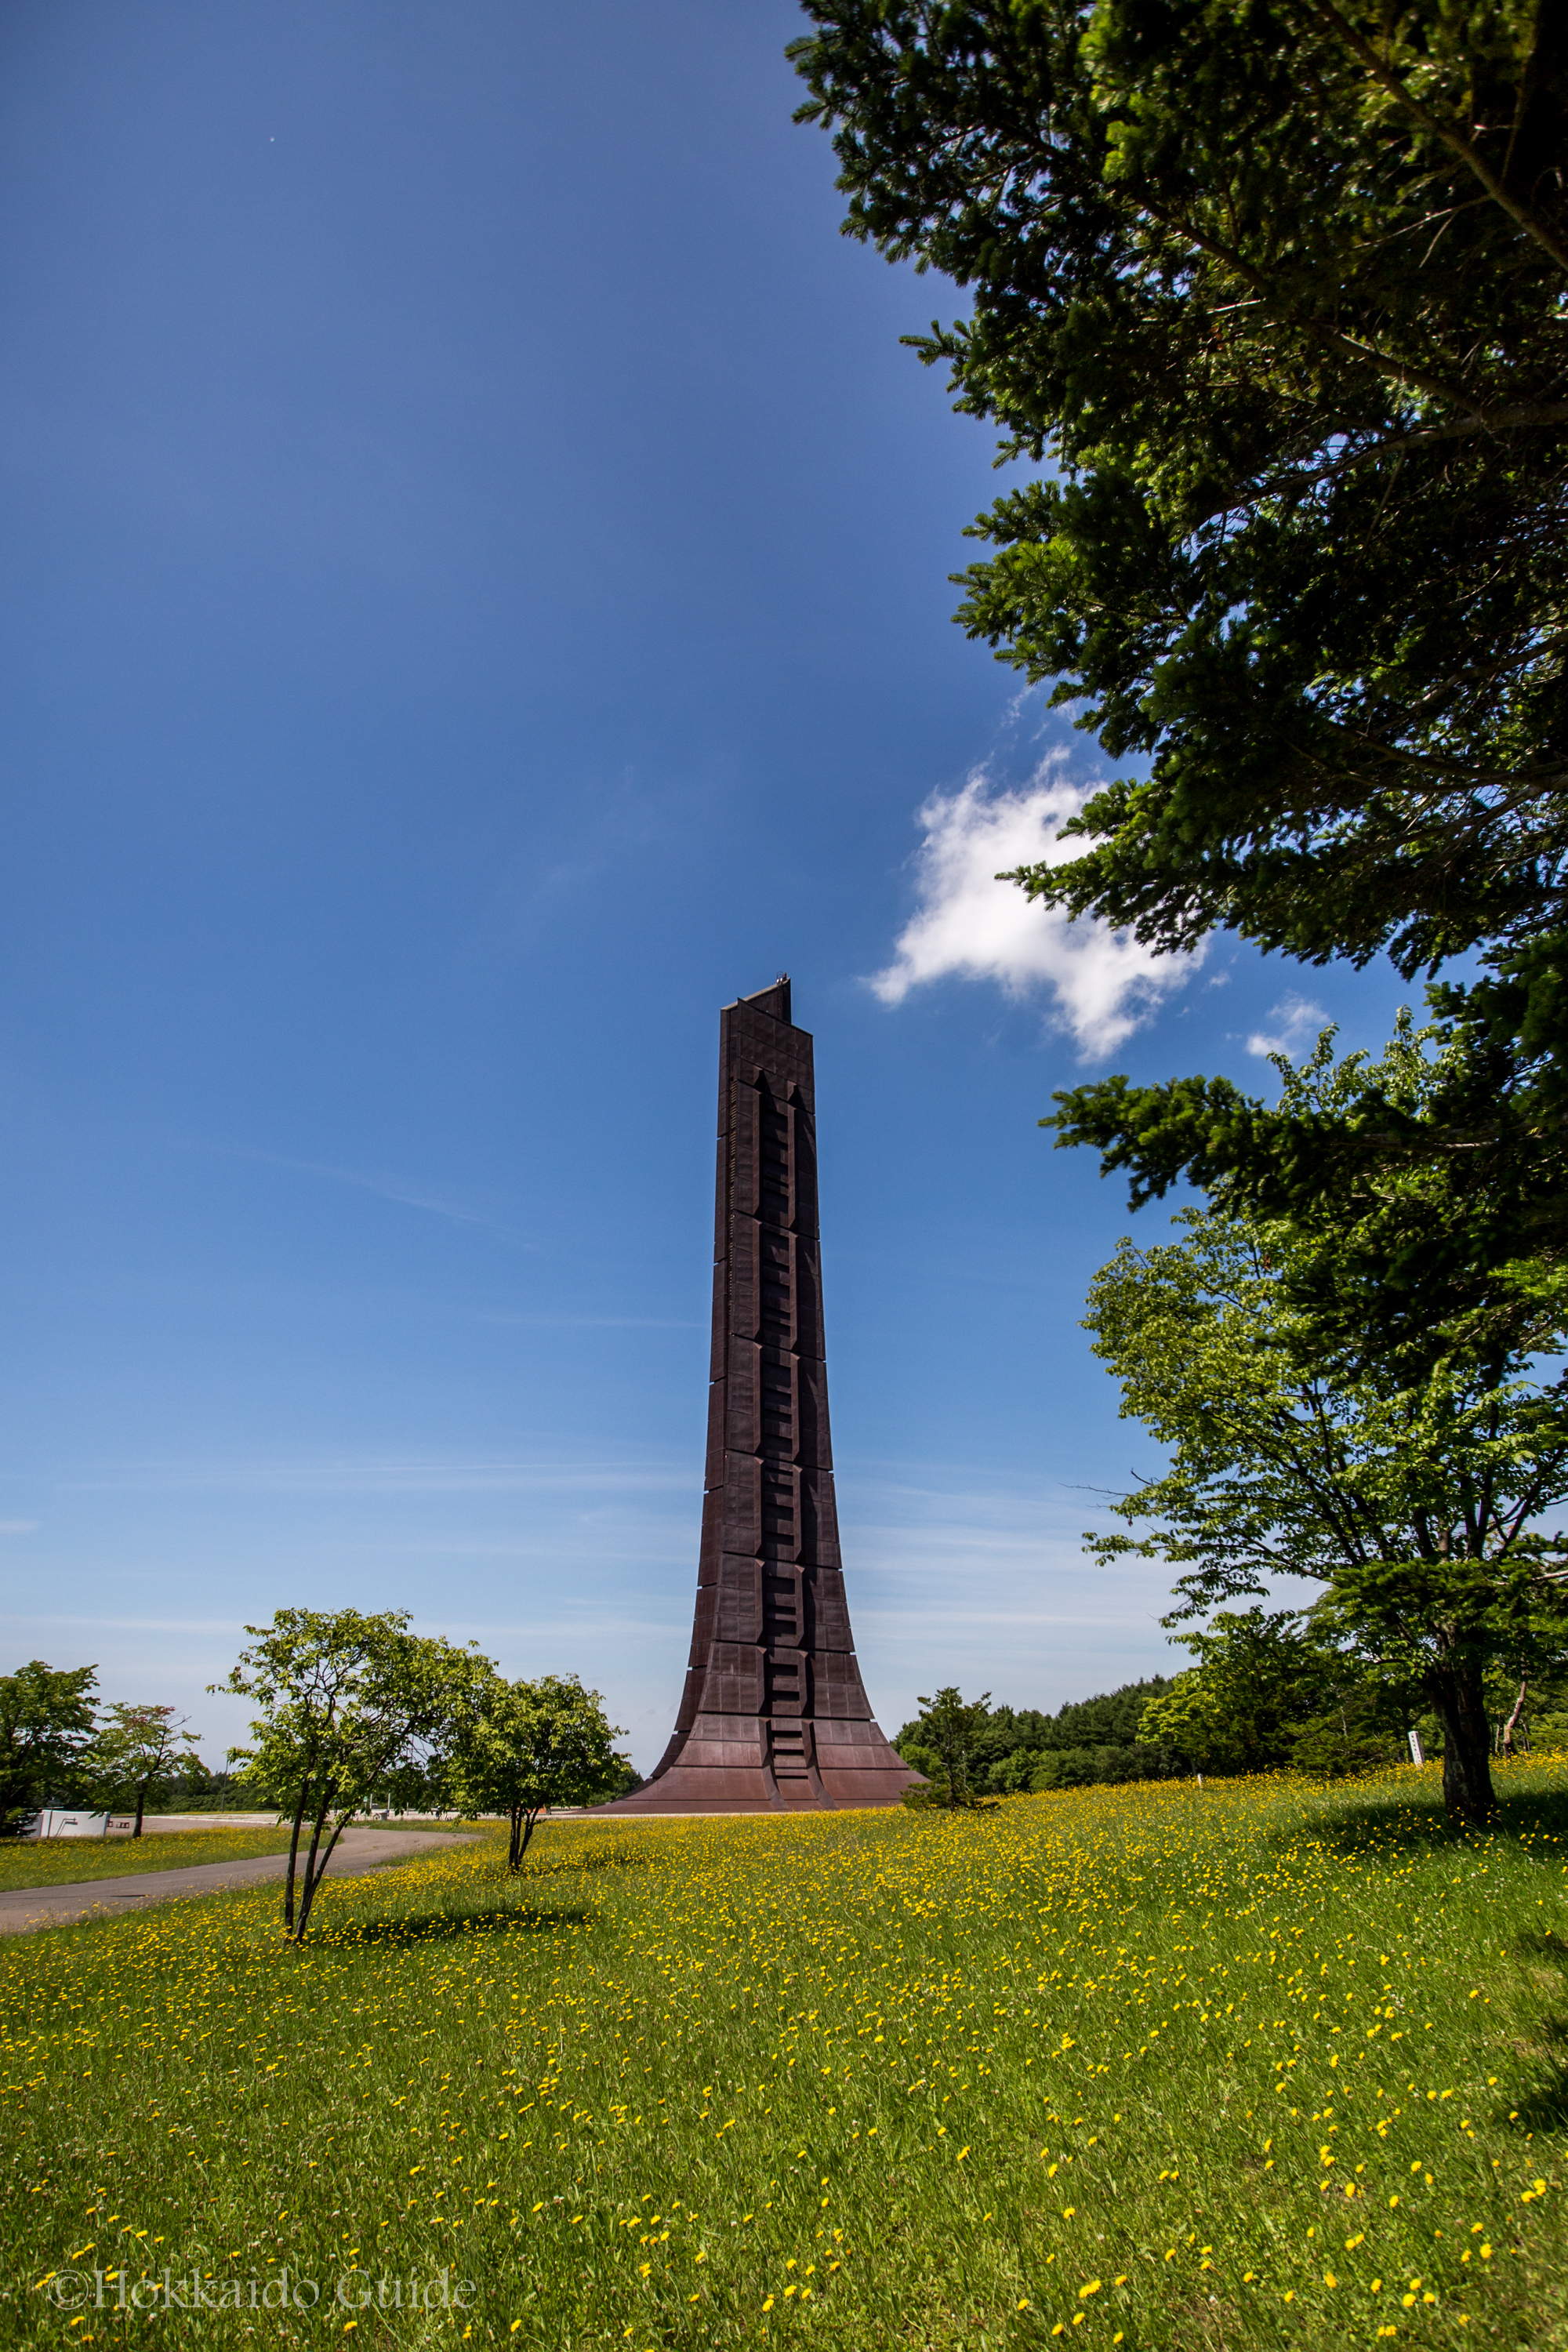 Centennial Memorial Tower in Nopporo Forest